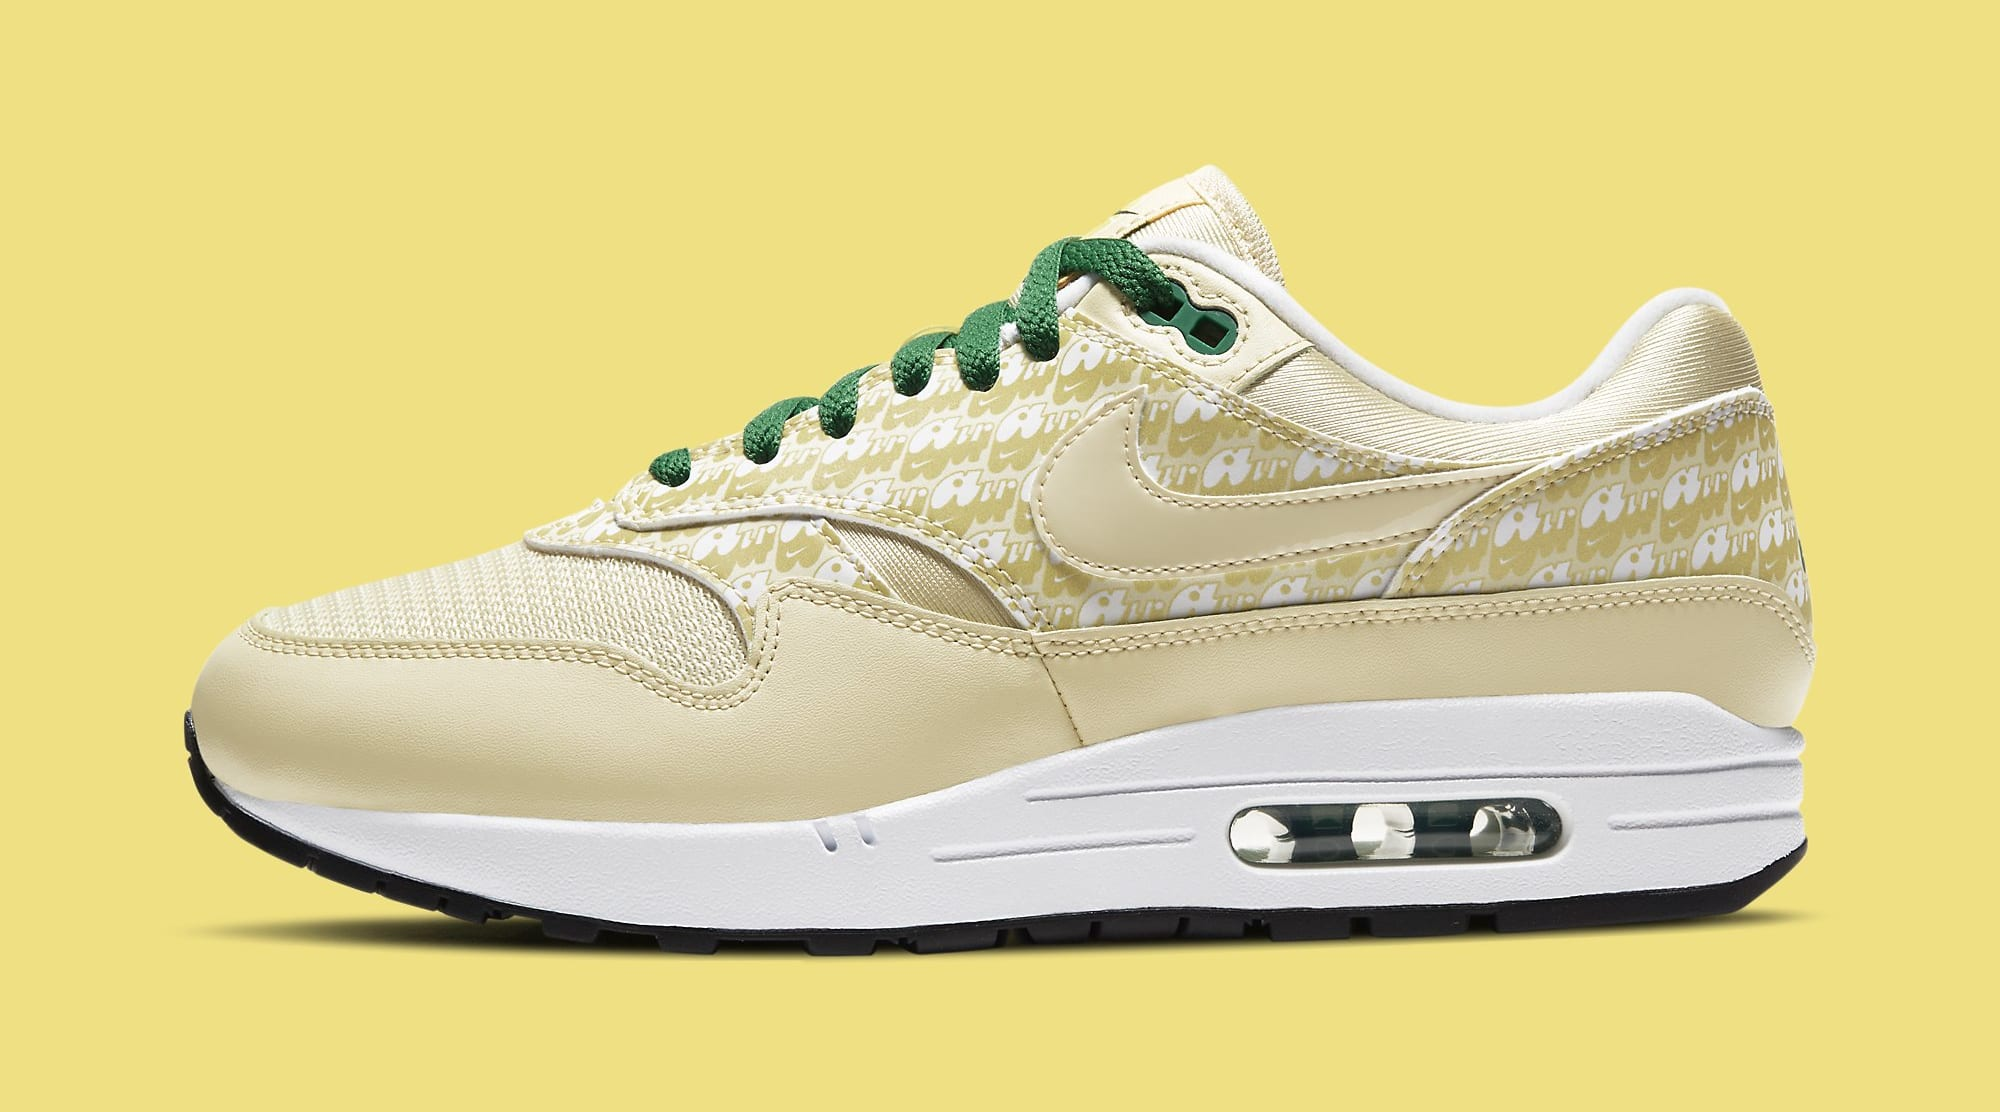 Nike Air Max 1 'Lemonade' CJ0609-700 Lateral